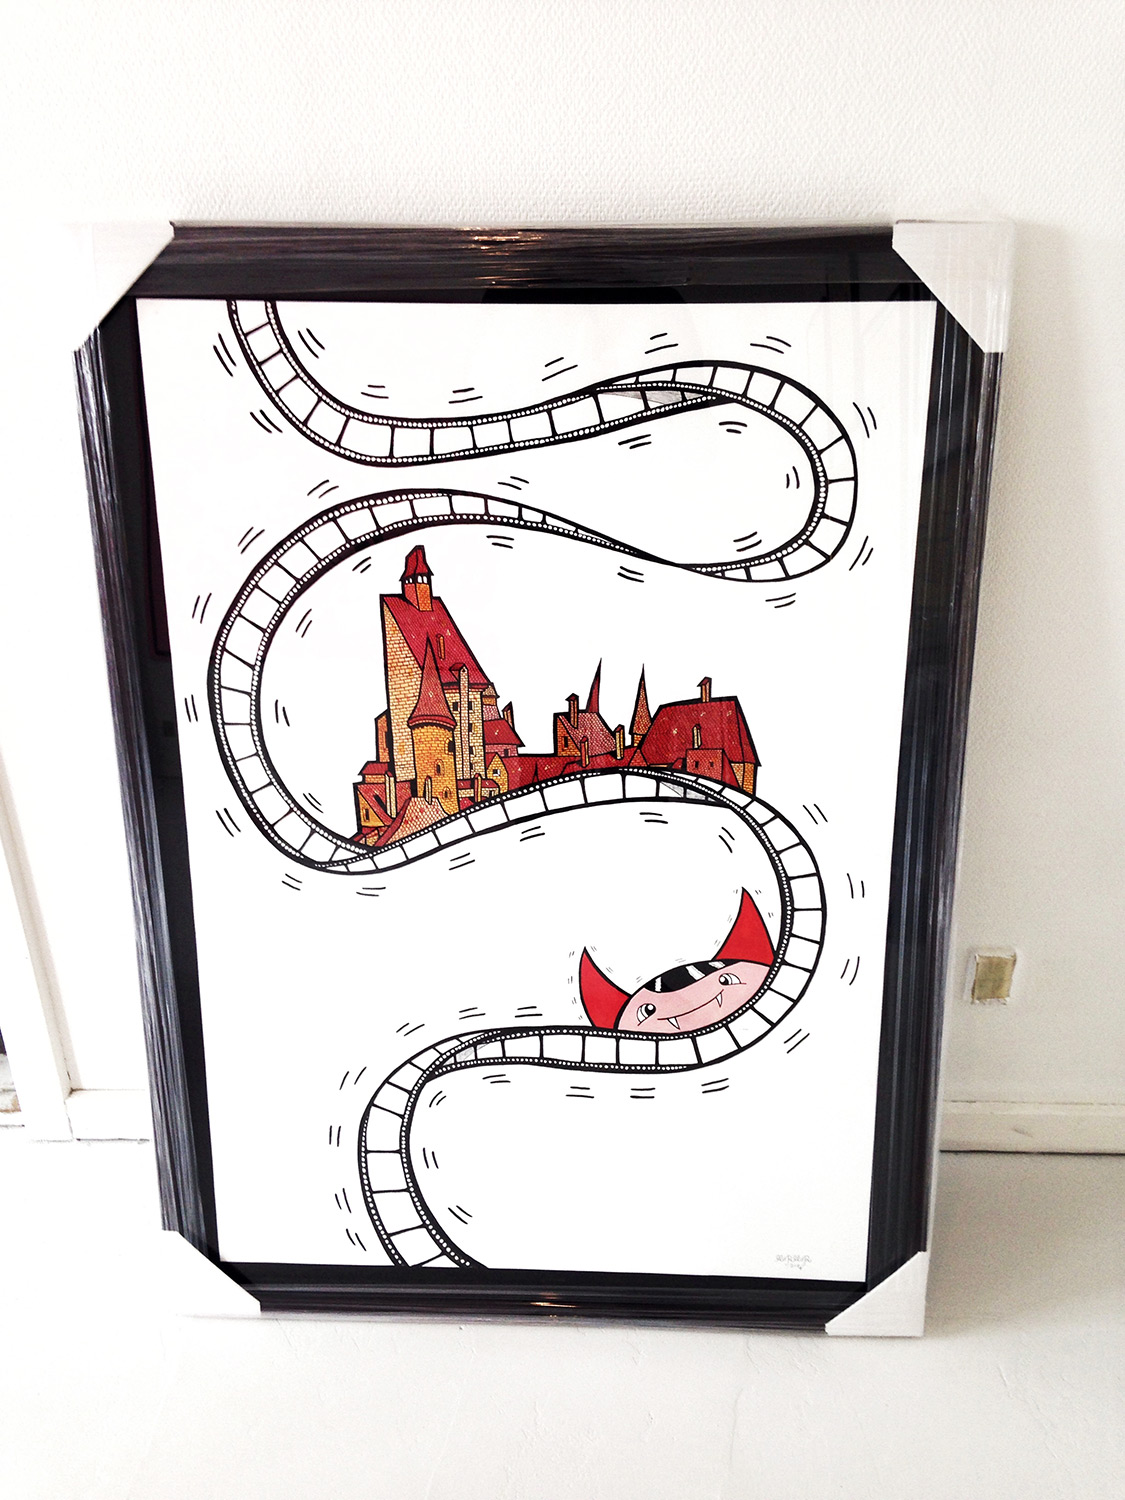 drawings, family-friendly, geometric, pop, architecture, humor, patterns, black, red, white, acrylic, artliner, paper, marker, amusing, buildings, street-art, Buy original high quality art. Paintings, drawings, limited edition prints & posters by talented artists.